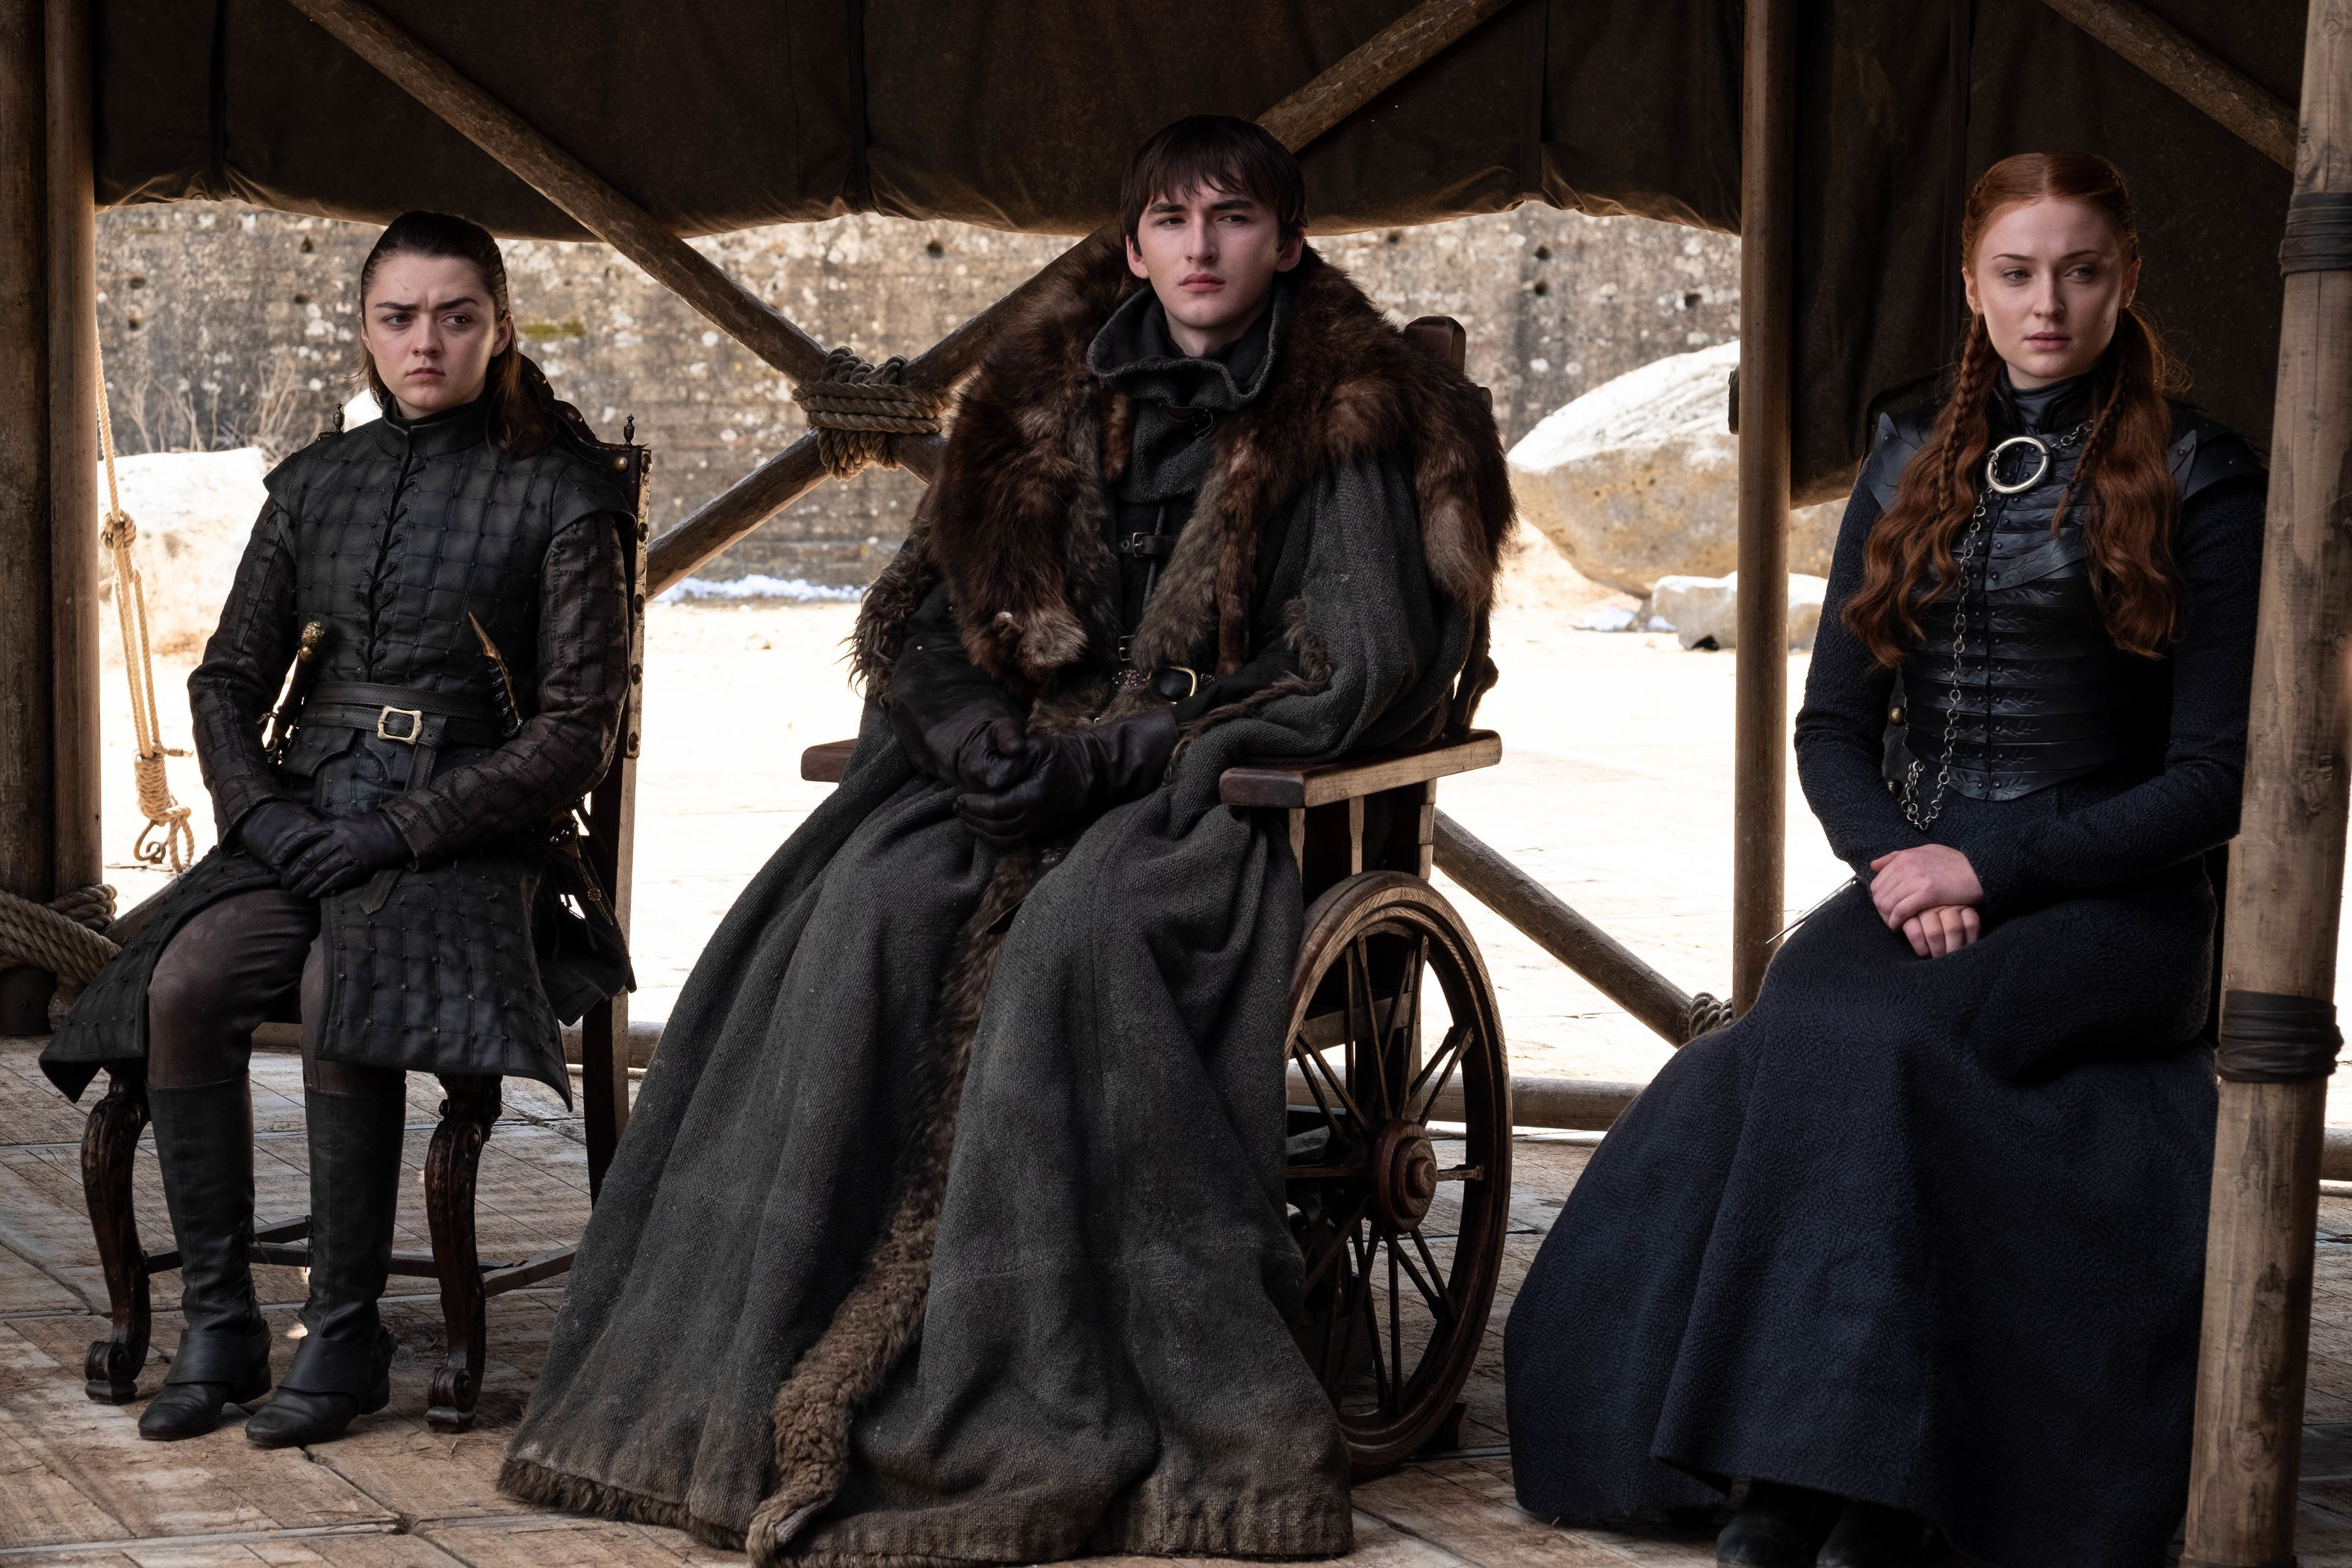 13 'Game of Thrones' Questions We Still Have After the Finale